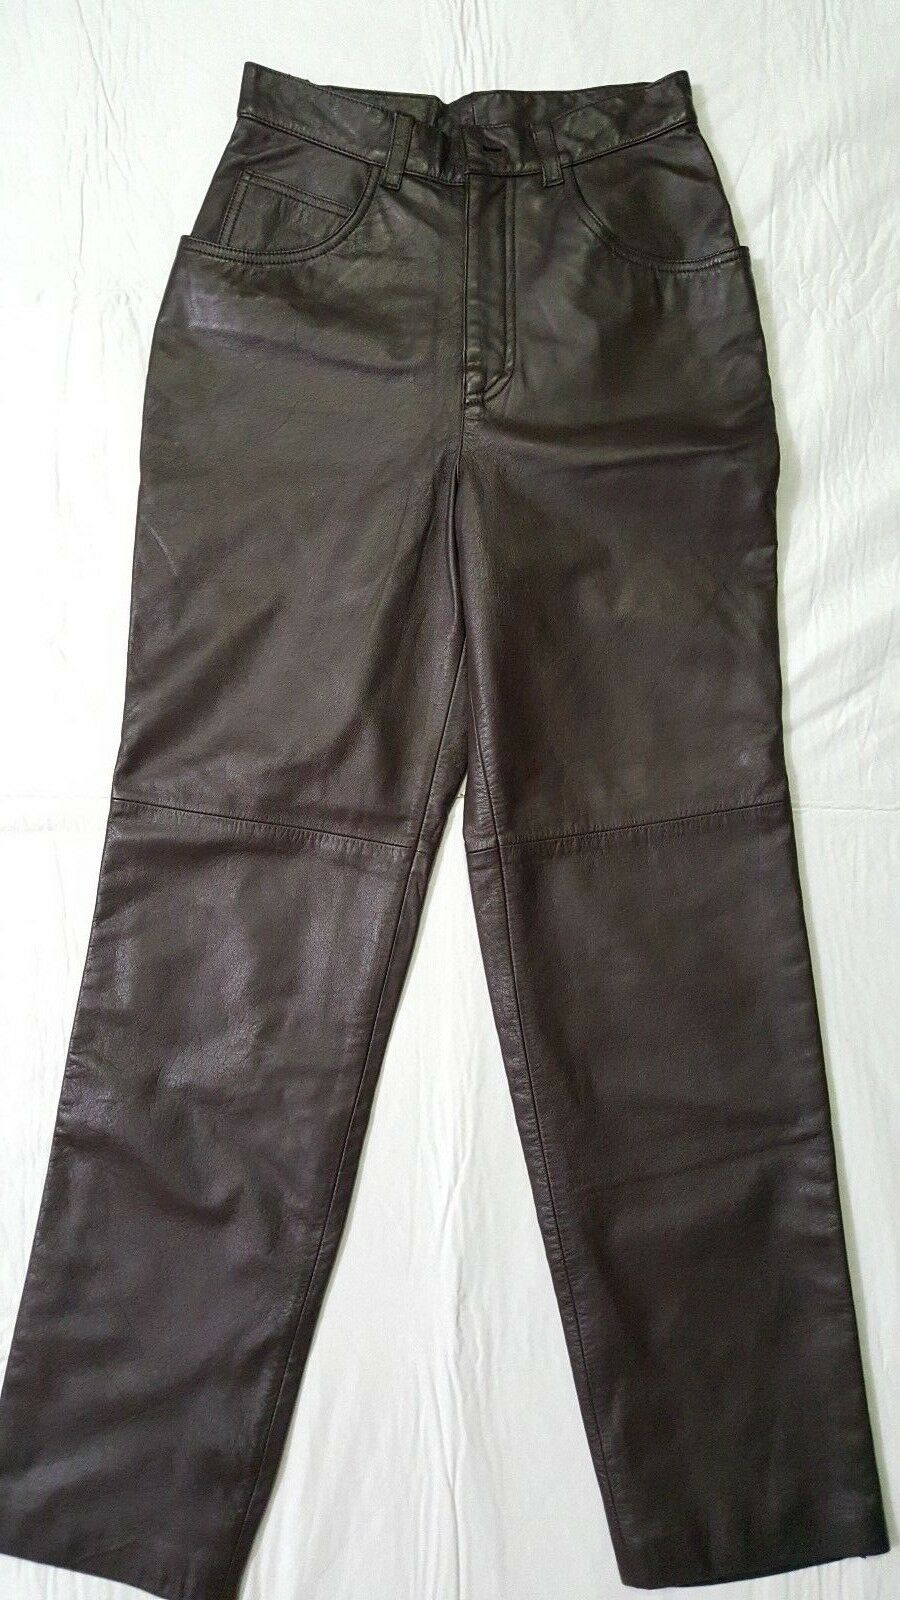 NEW LAUREN RALPH LAUREN BROWN LEATHER PETITE PANT SIZE 2P